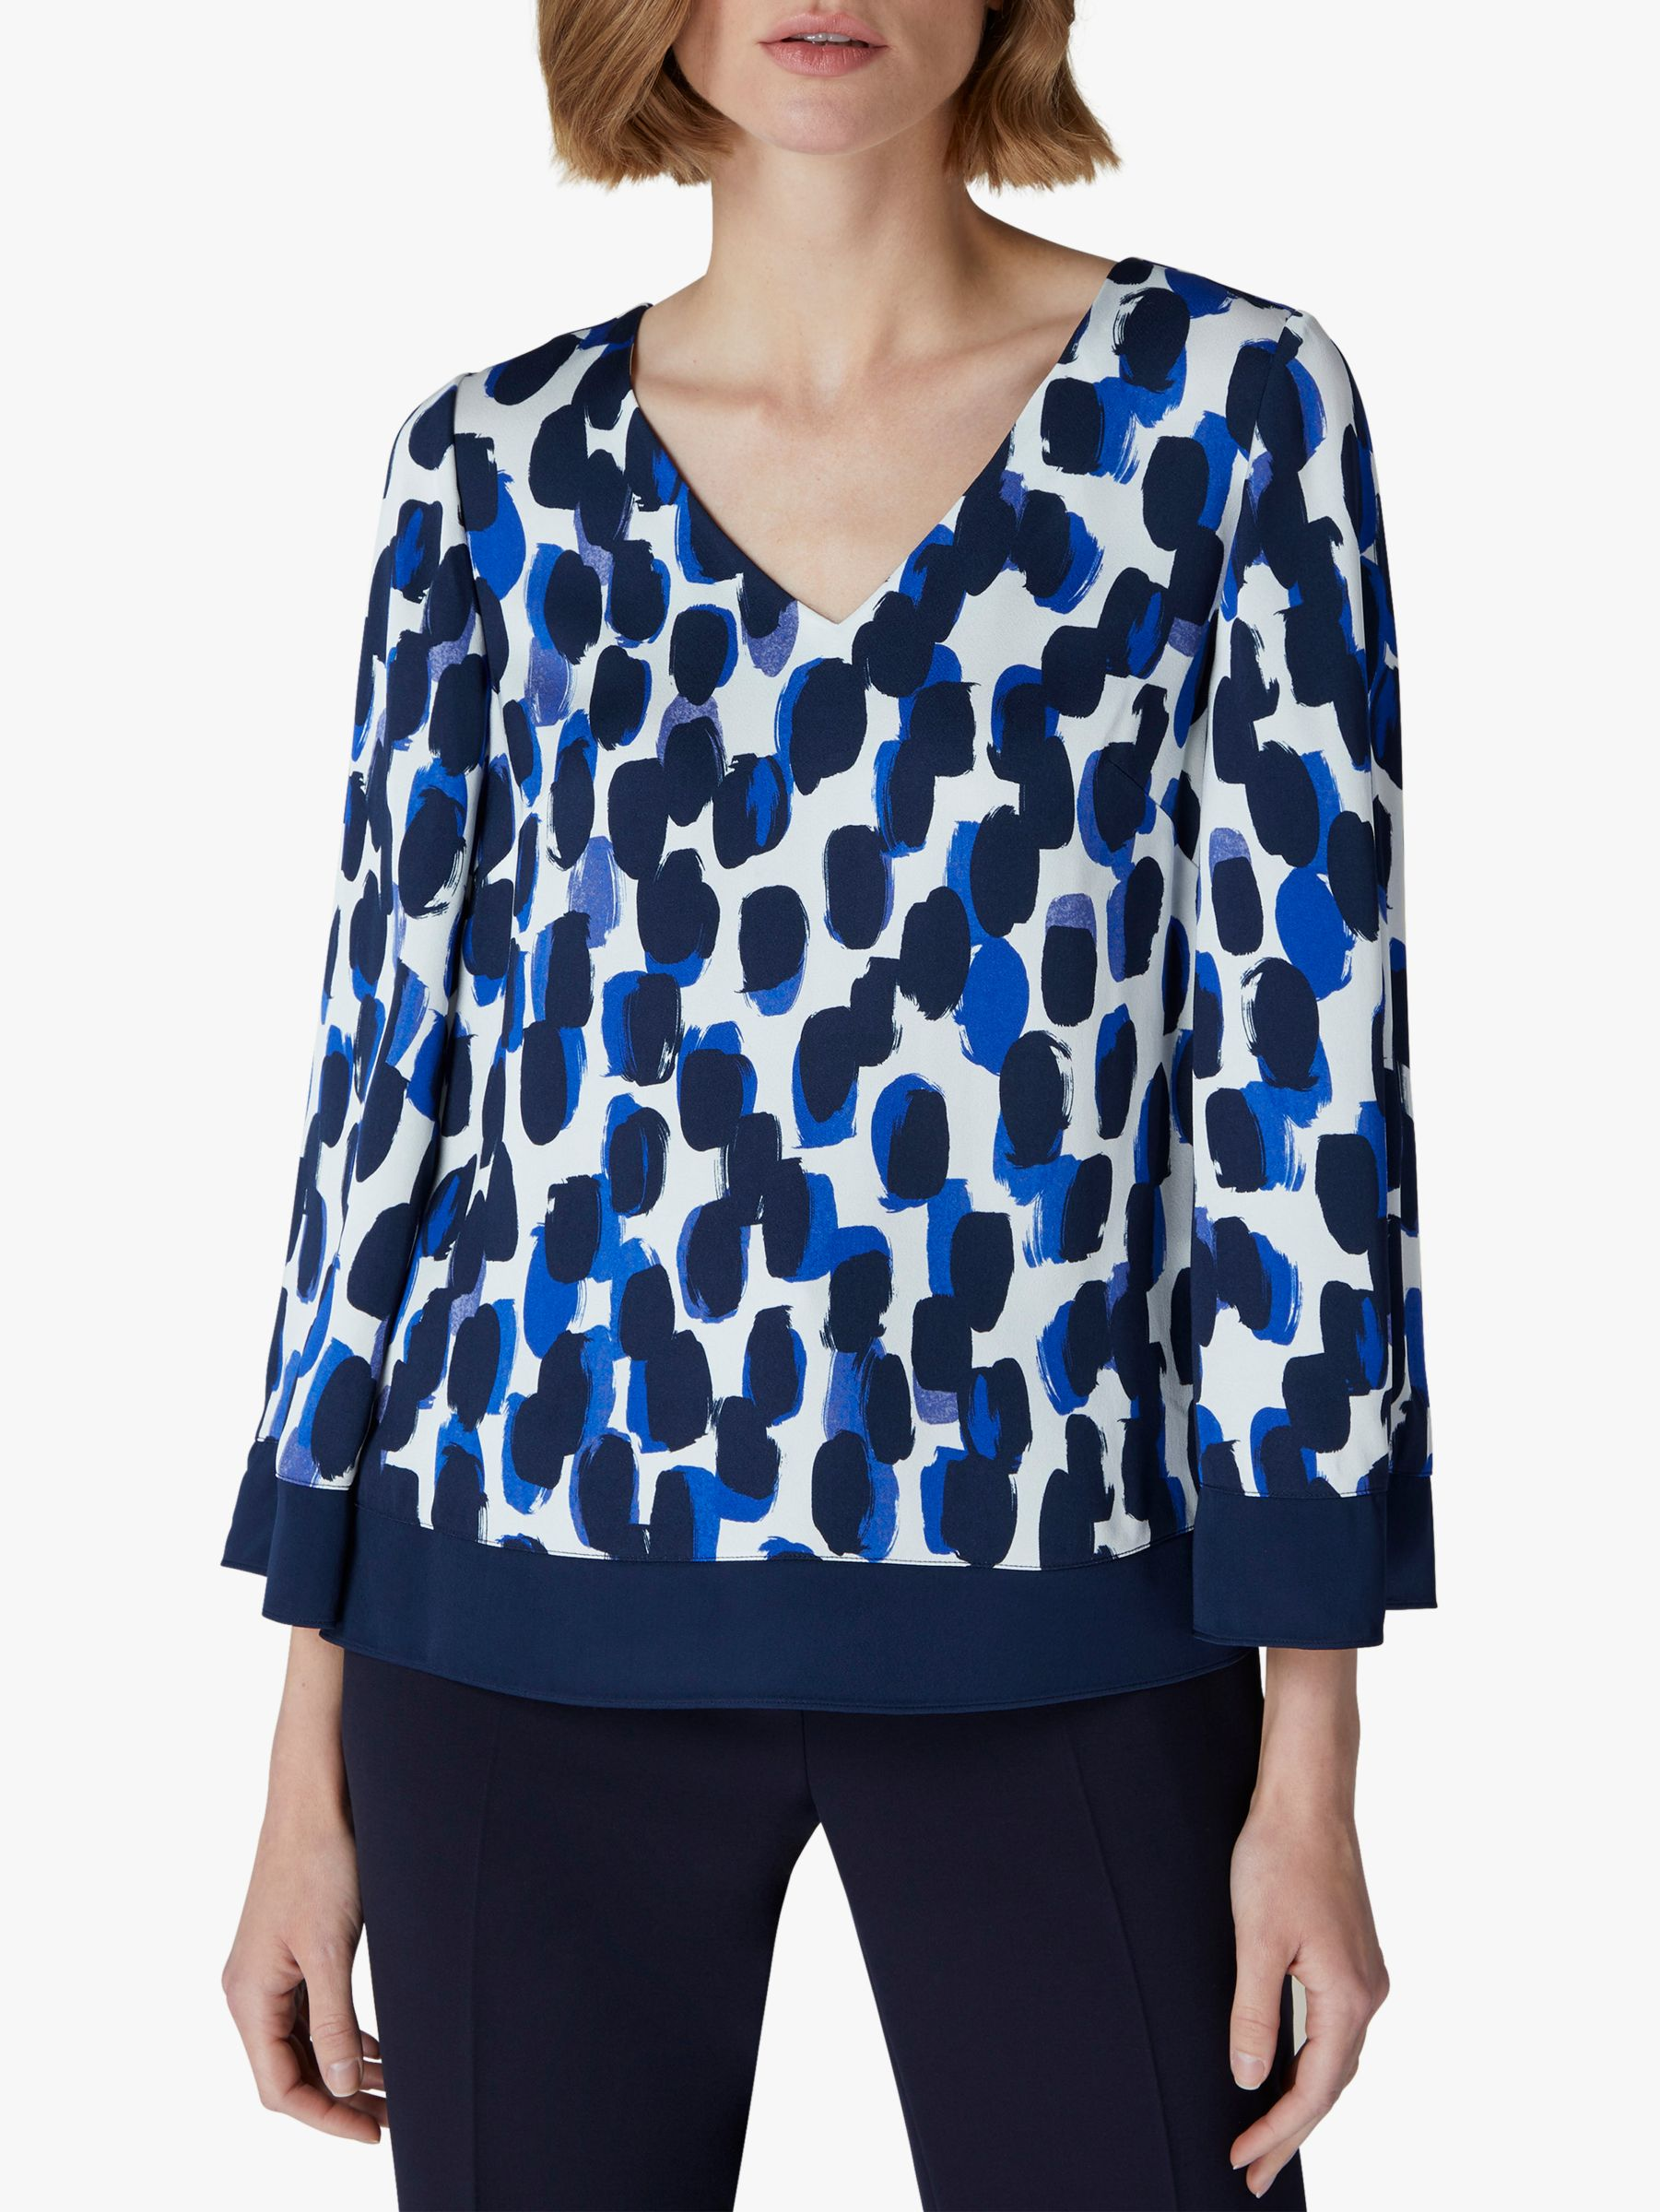 Jaeger Jaeger Smudge Hem Top, Blue/White